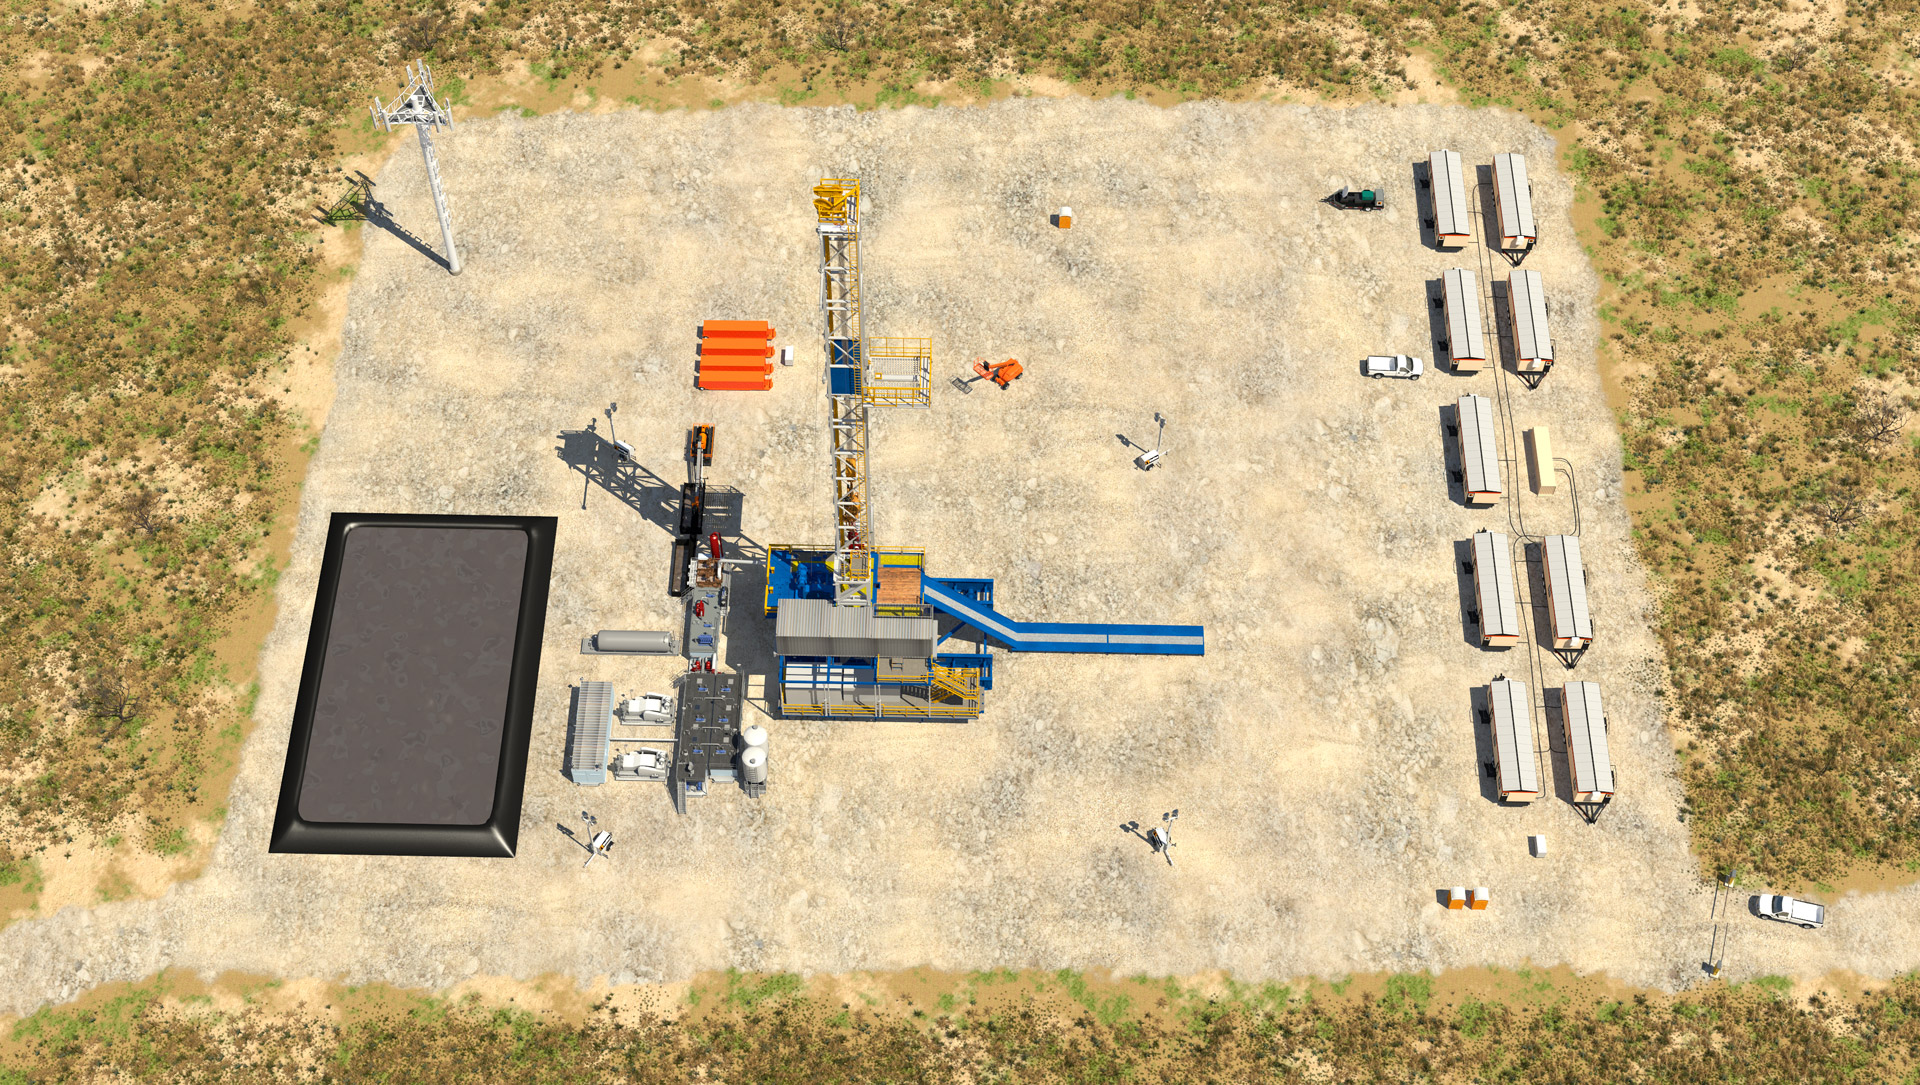 Overhead view of an oil field using Stallions Integrated Services